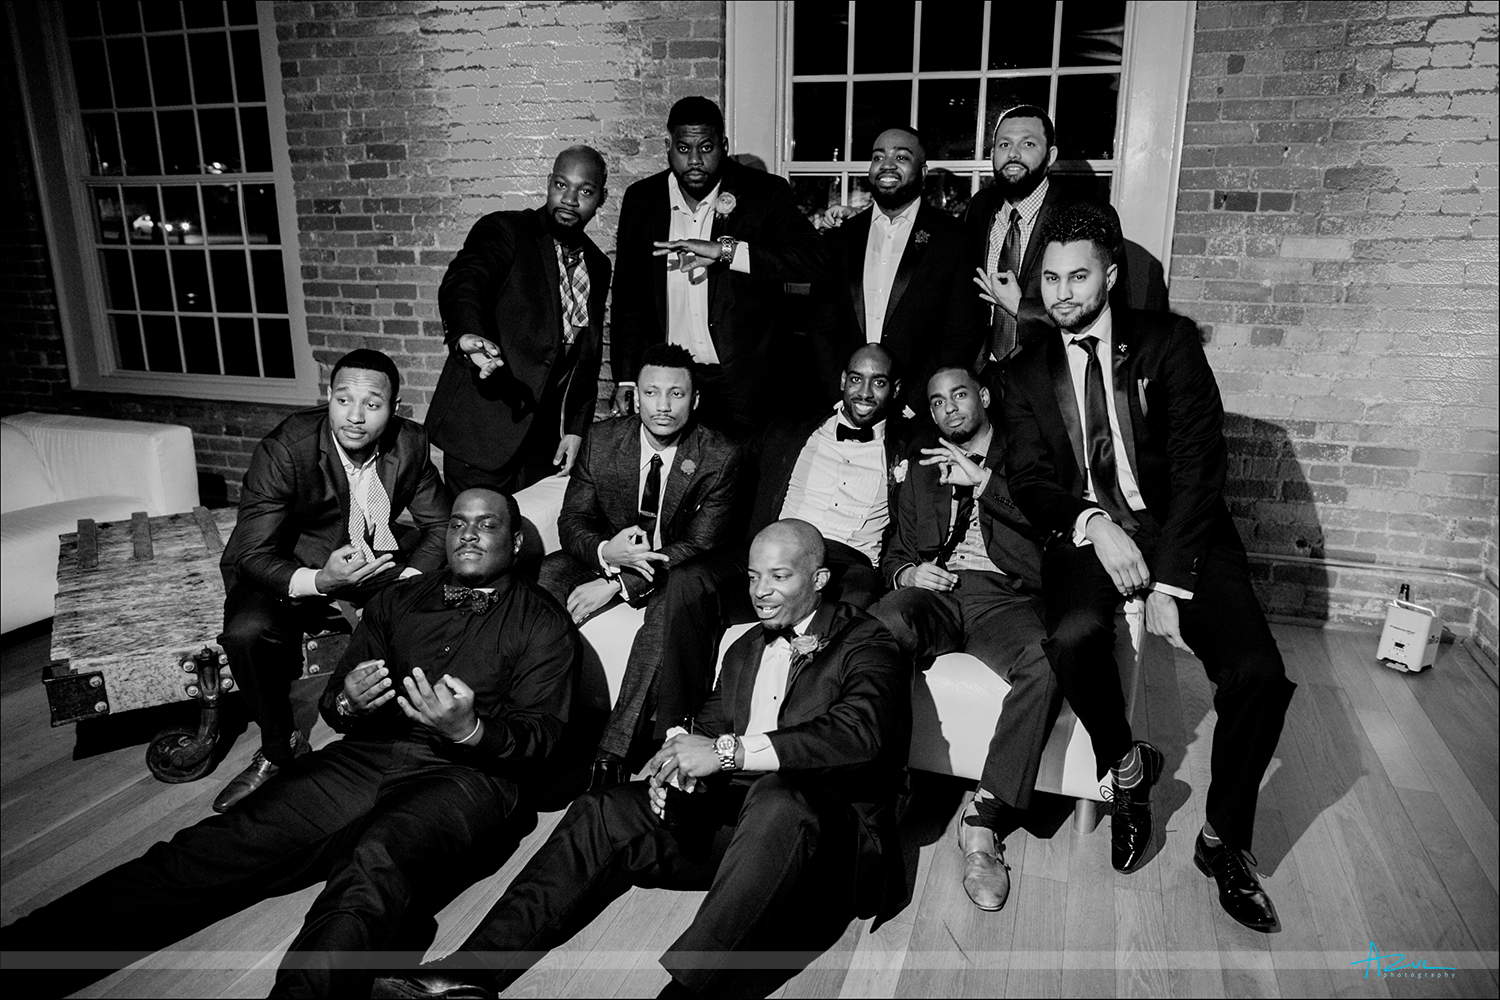 Group shots at a wedding are a must for wedding photographers at receptions while in The Cotton Room